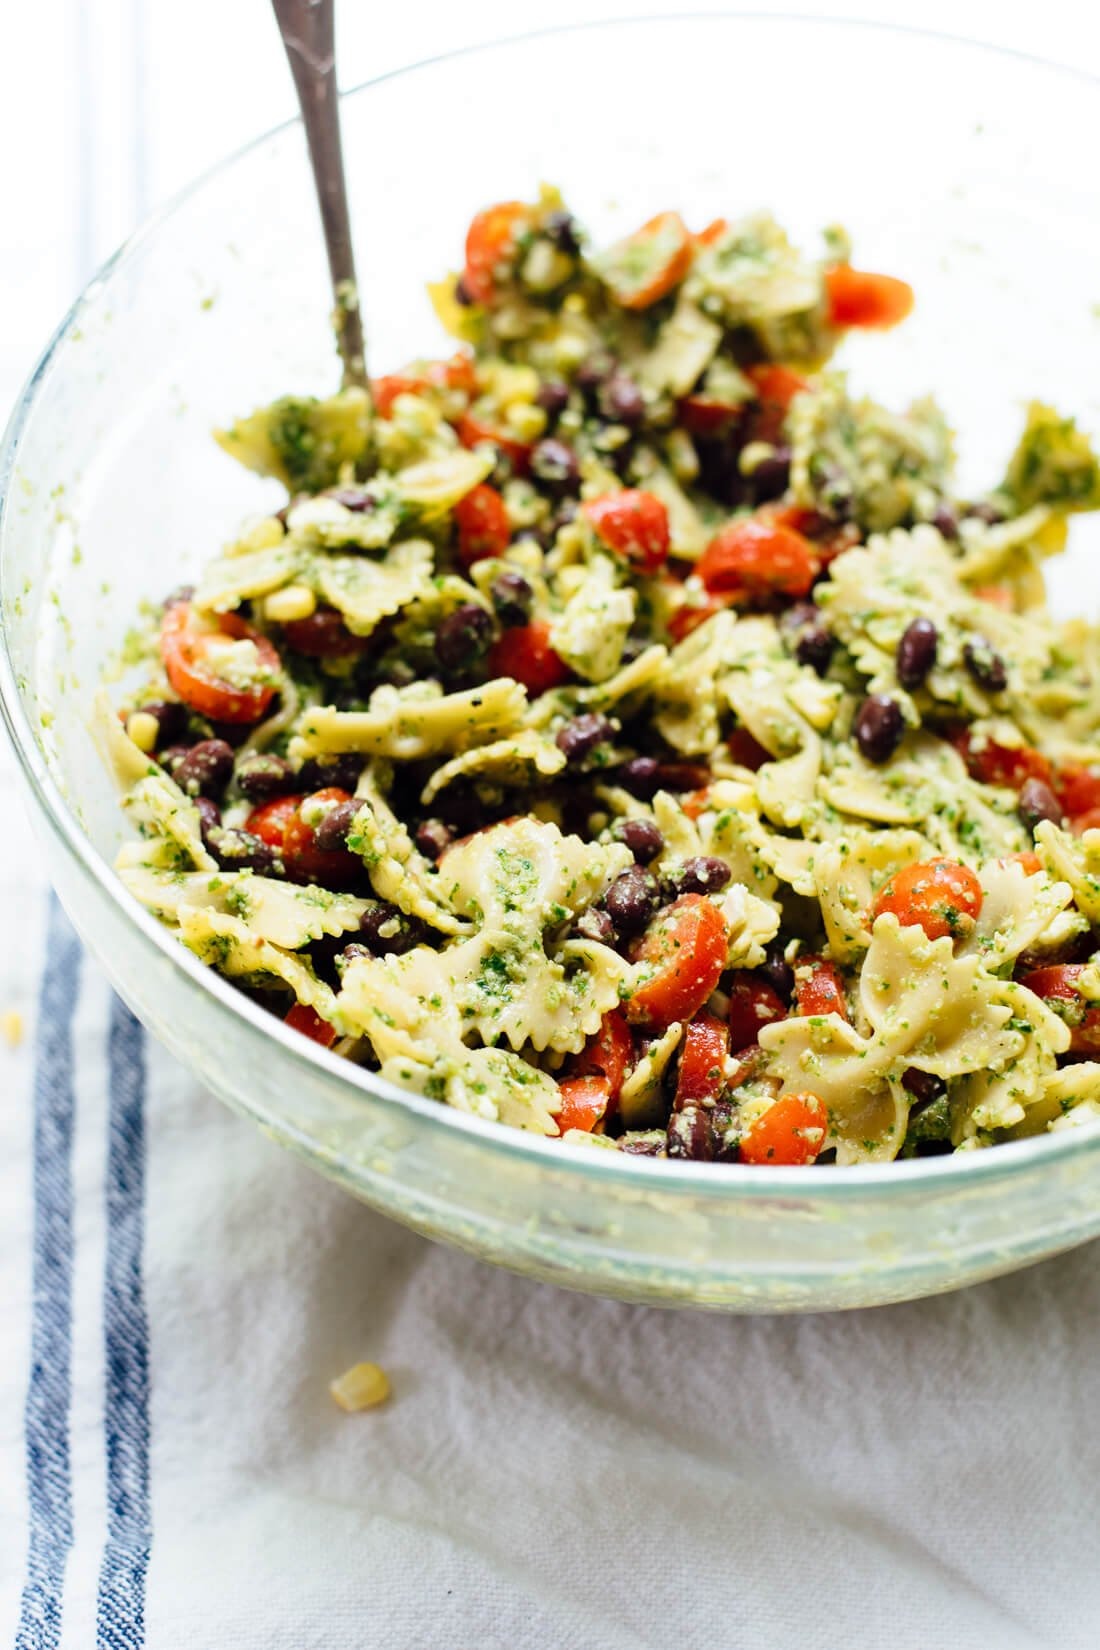 Healthy summer pasta salad with tomatoes, corn, black beans and a bold herbed pesto